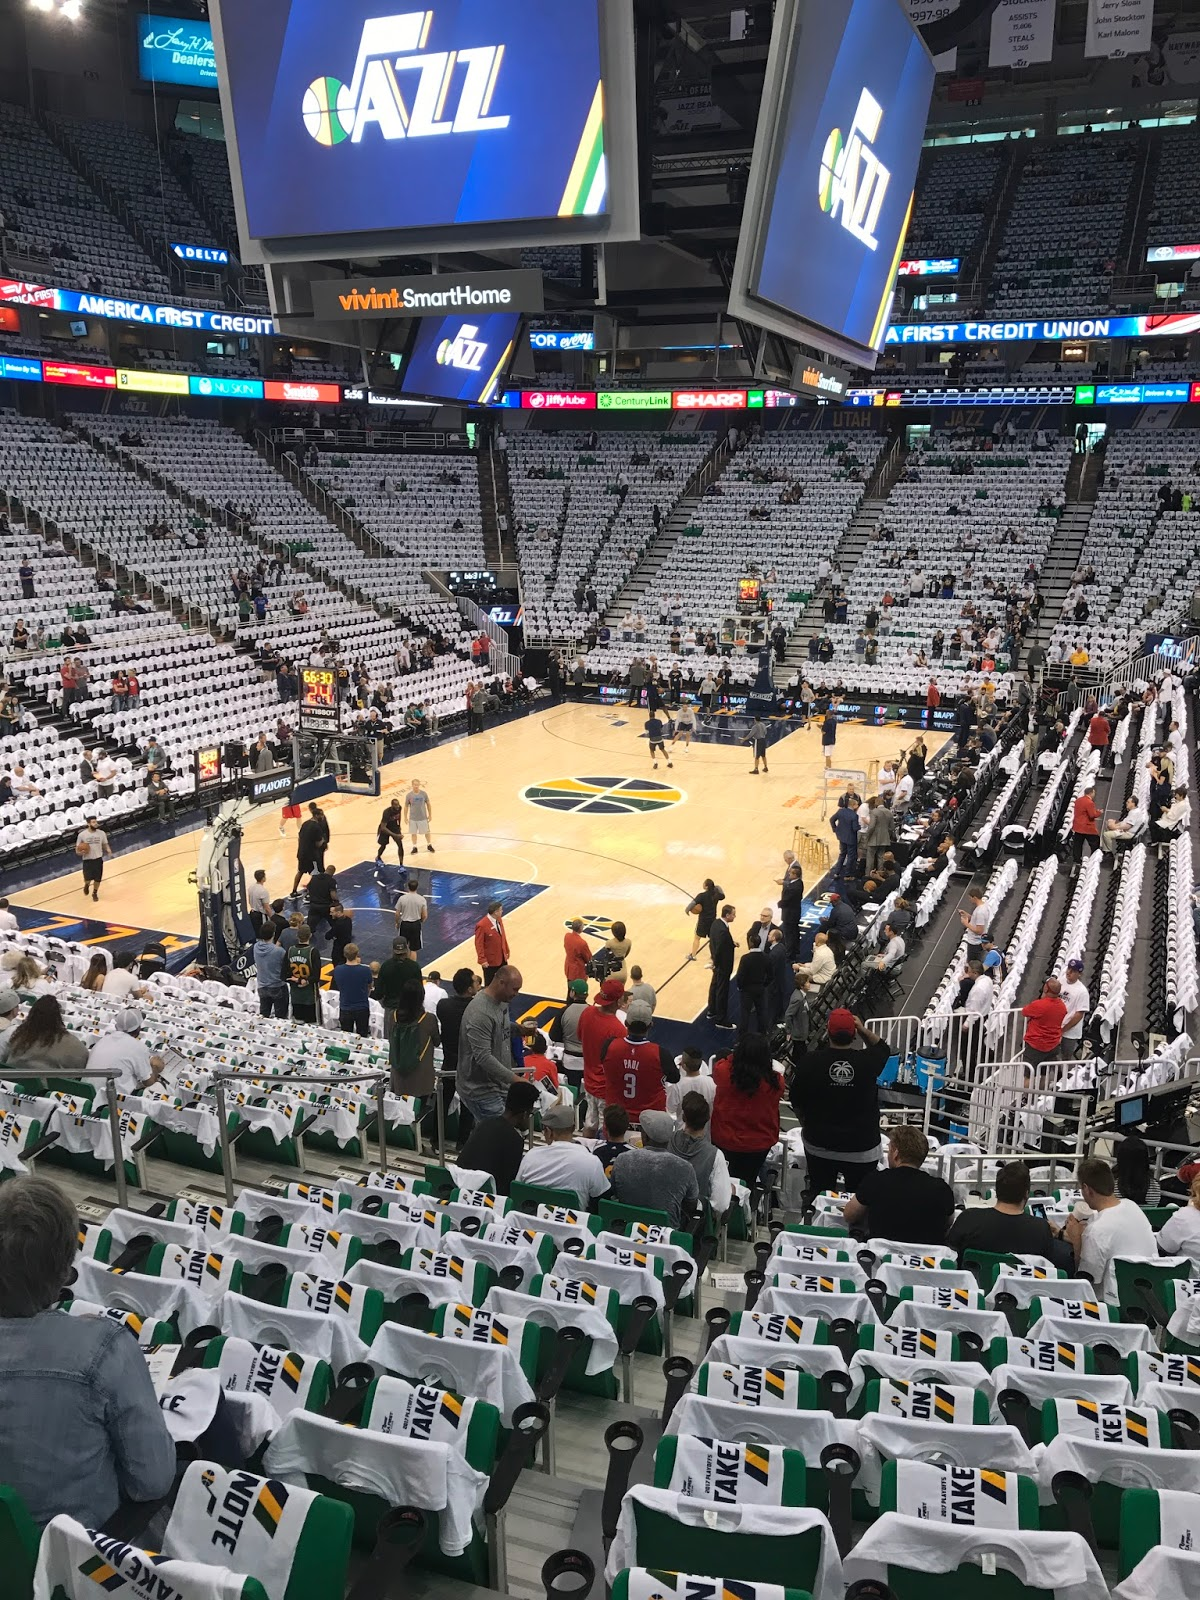 What a home court advantage the Jazz have. I ve been to one other playoff  game (last year Celtics v. Hawks at the TD Garden) and Vivint Smart Home  Arena ... 8f821bd78